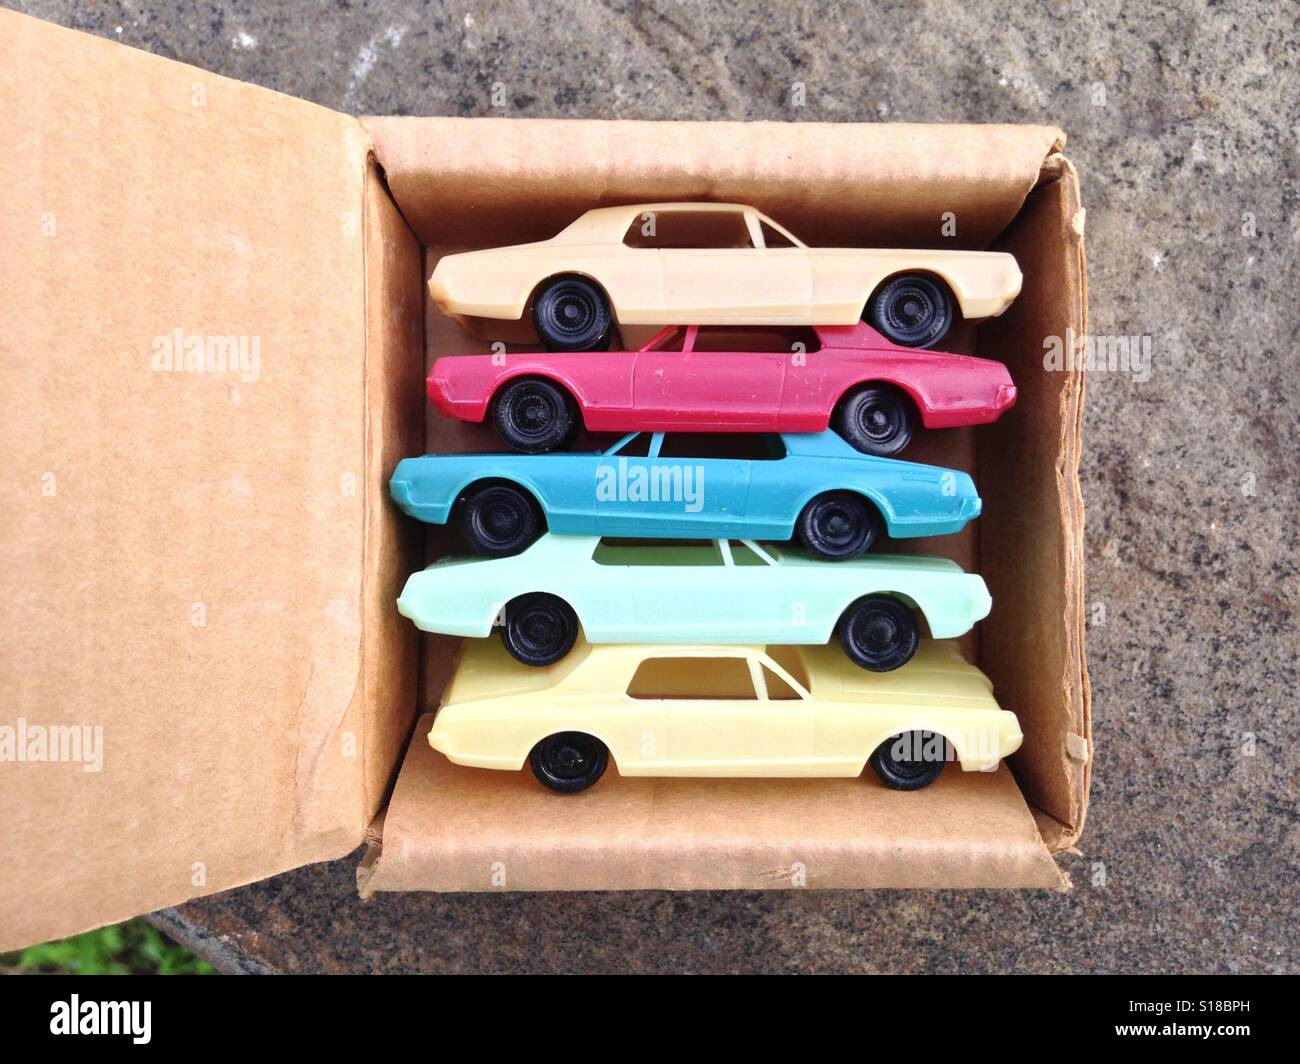 Five 1967 Mercury Cougar toy model cars Stock Photo